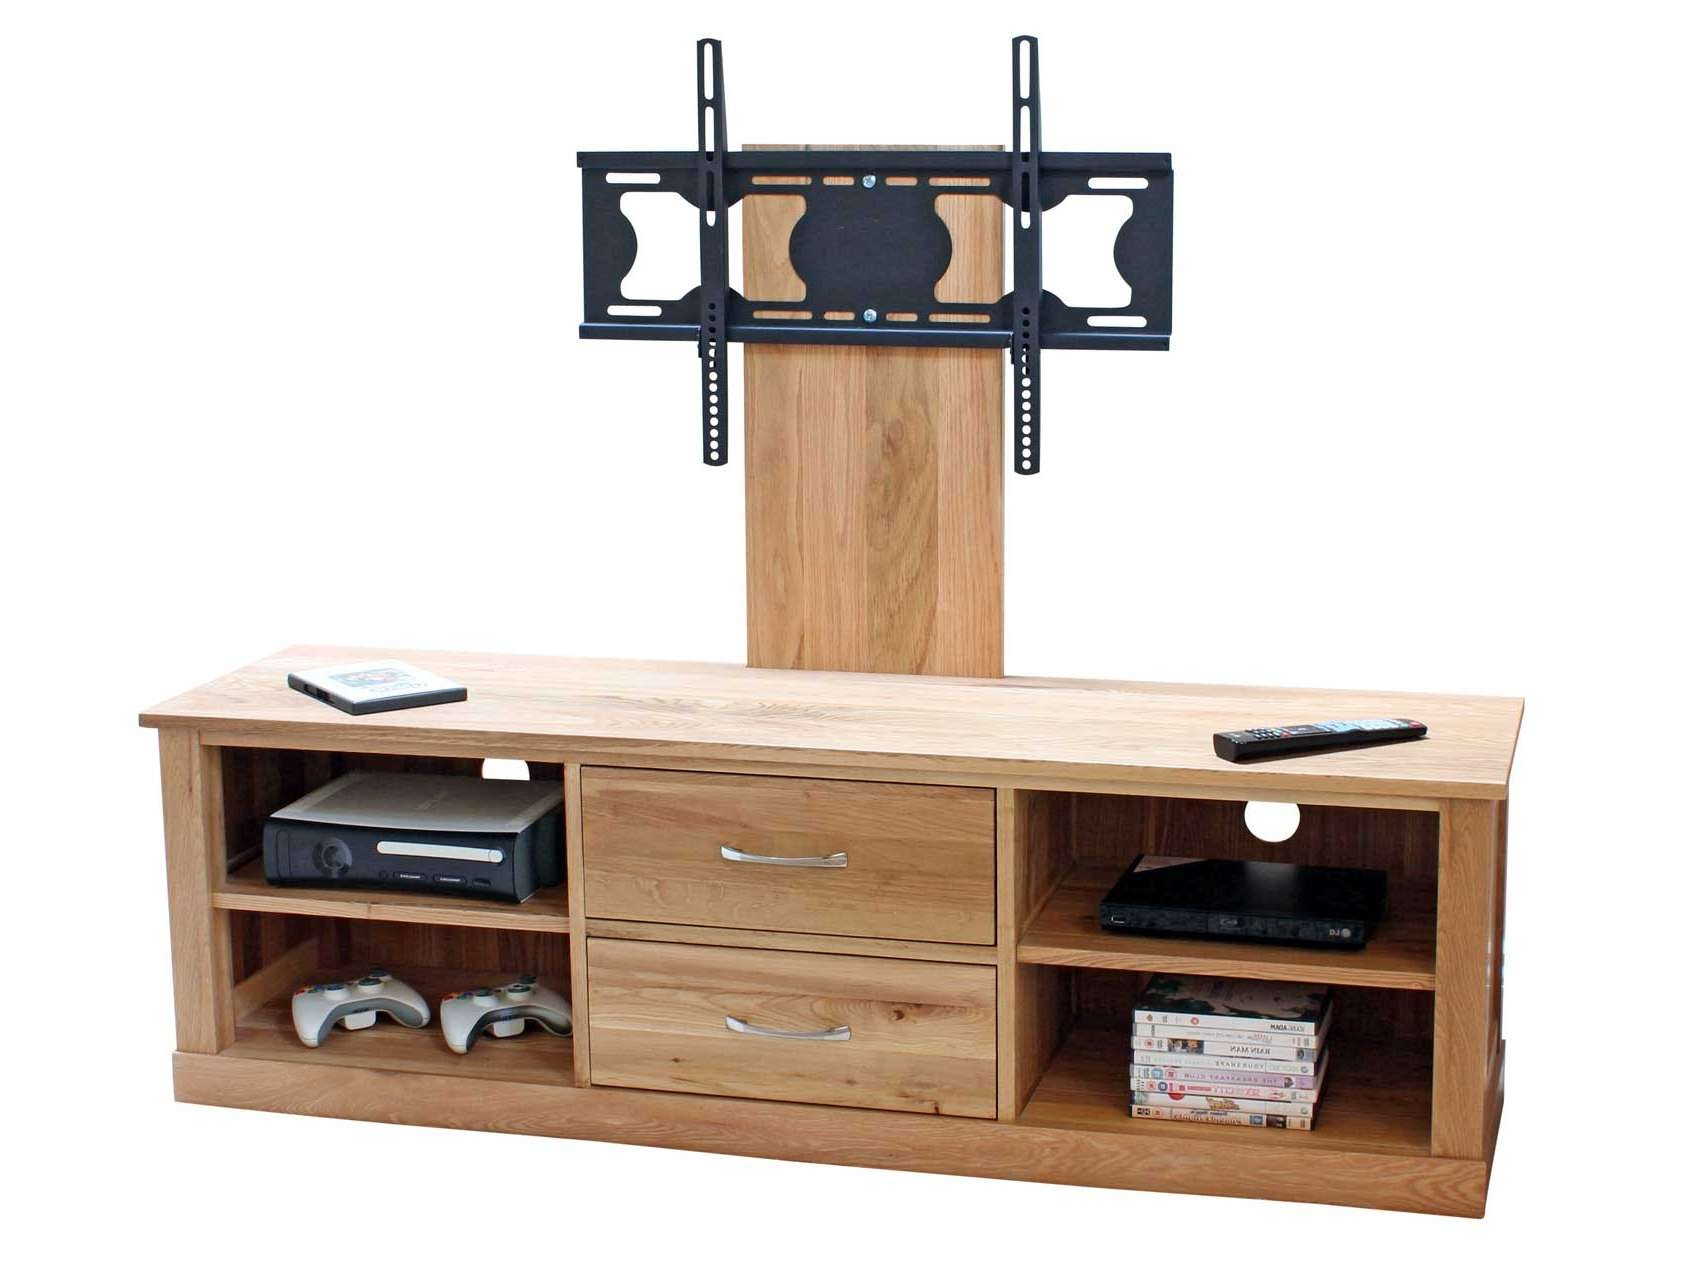 Oak Wooden Tv Stand With Mount For Flat Screen Of 14 Gorgeous Intended For Corner Tv Stands With Bracket (View 10 of 20)